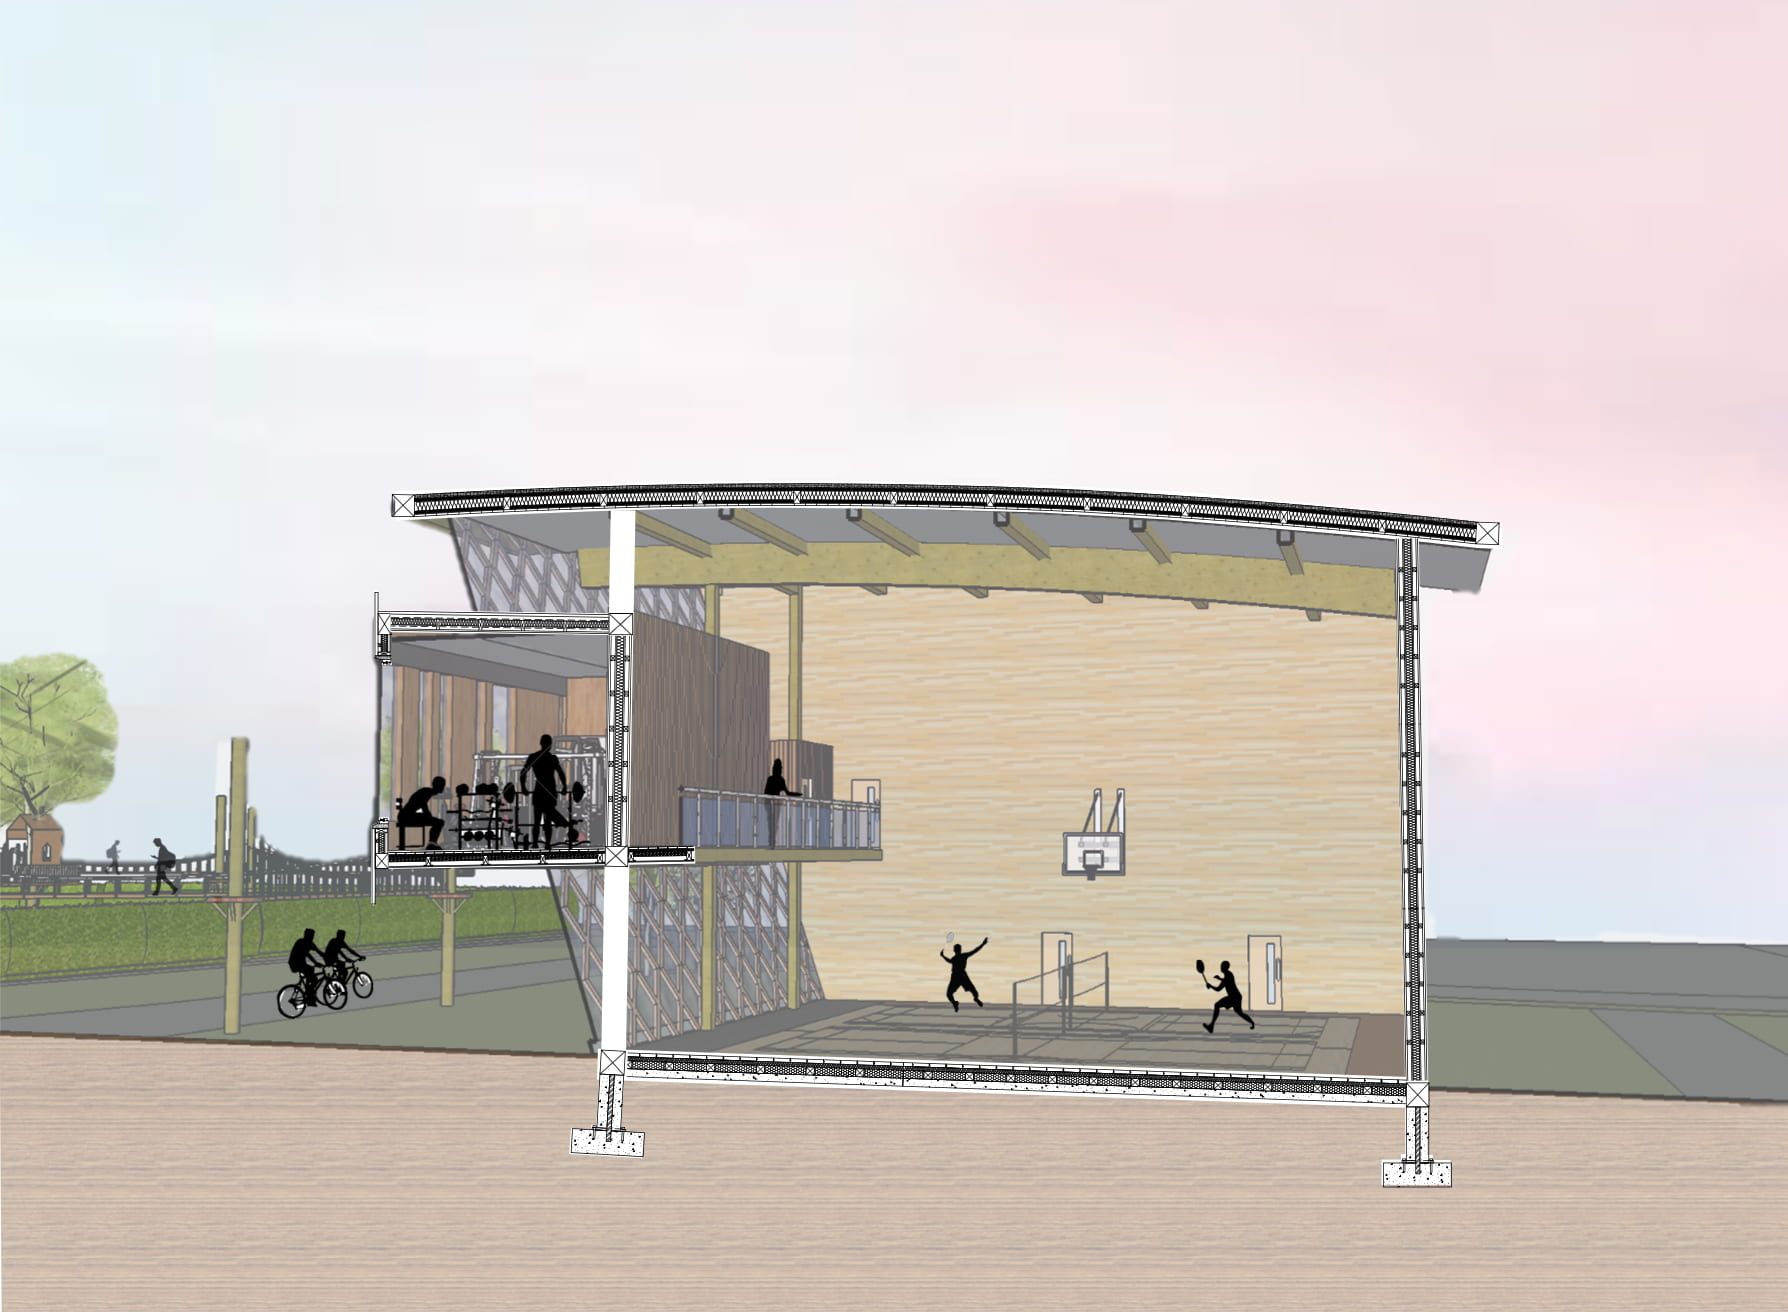 Integrative drawing showing how the building will be spaced